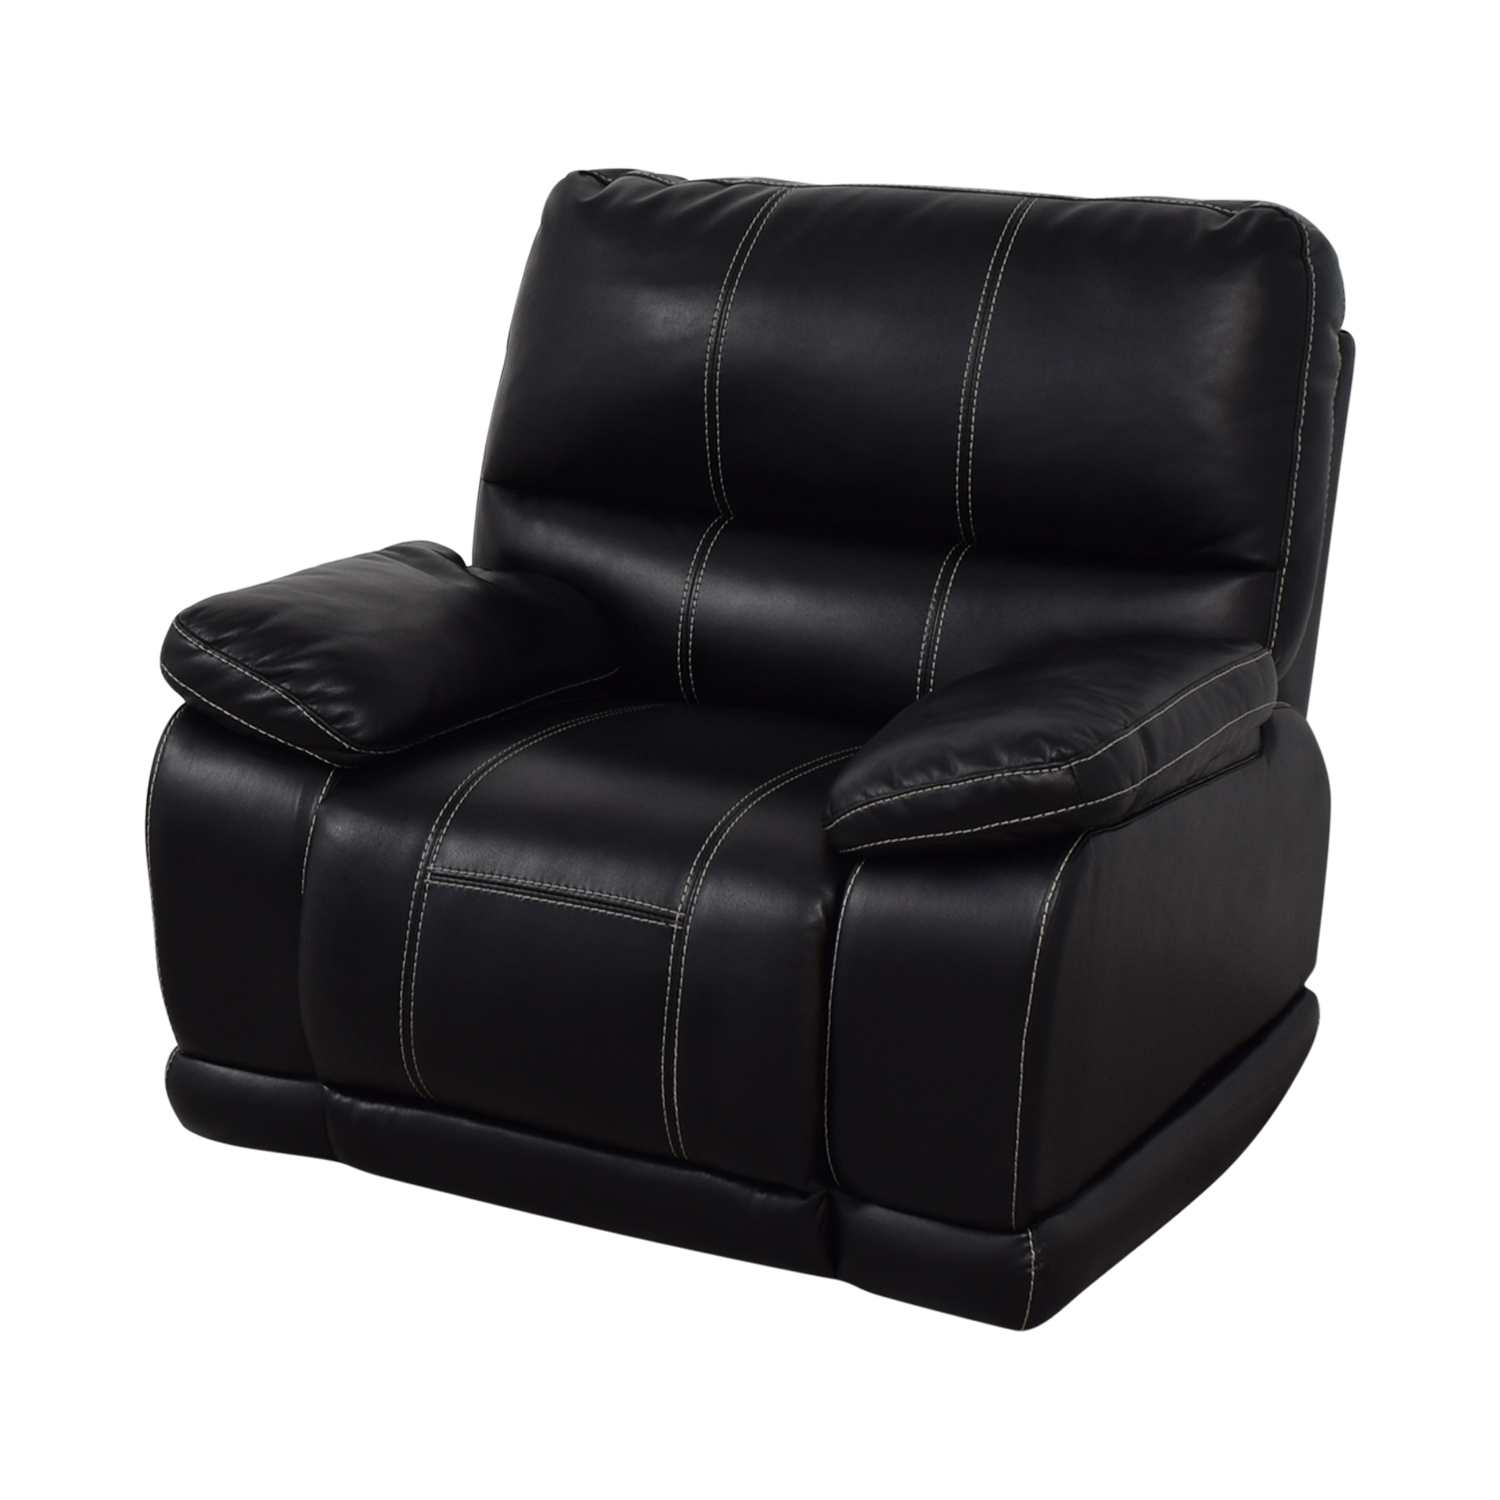 shop Klaussner Black Reclining Chair Klaussner Recliners